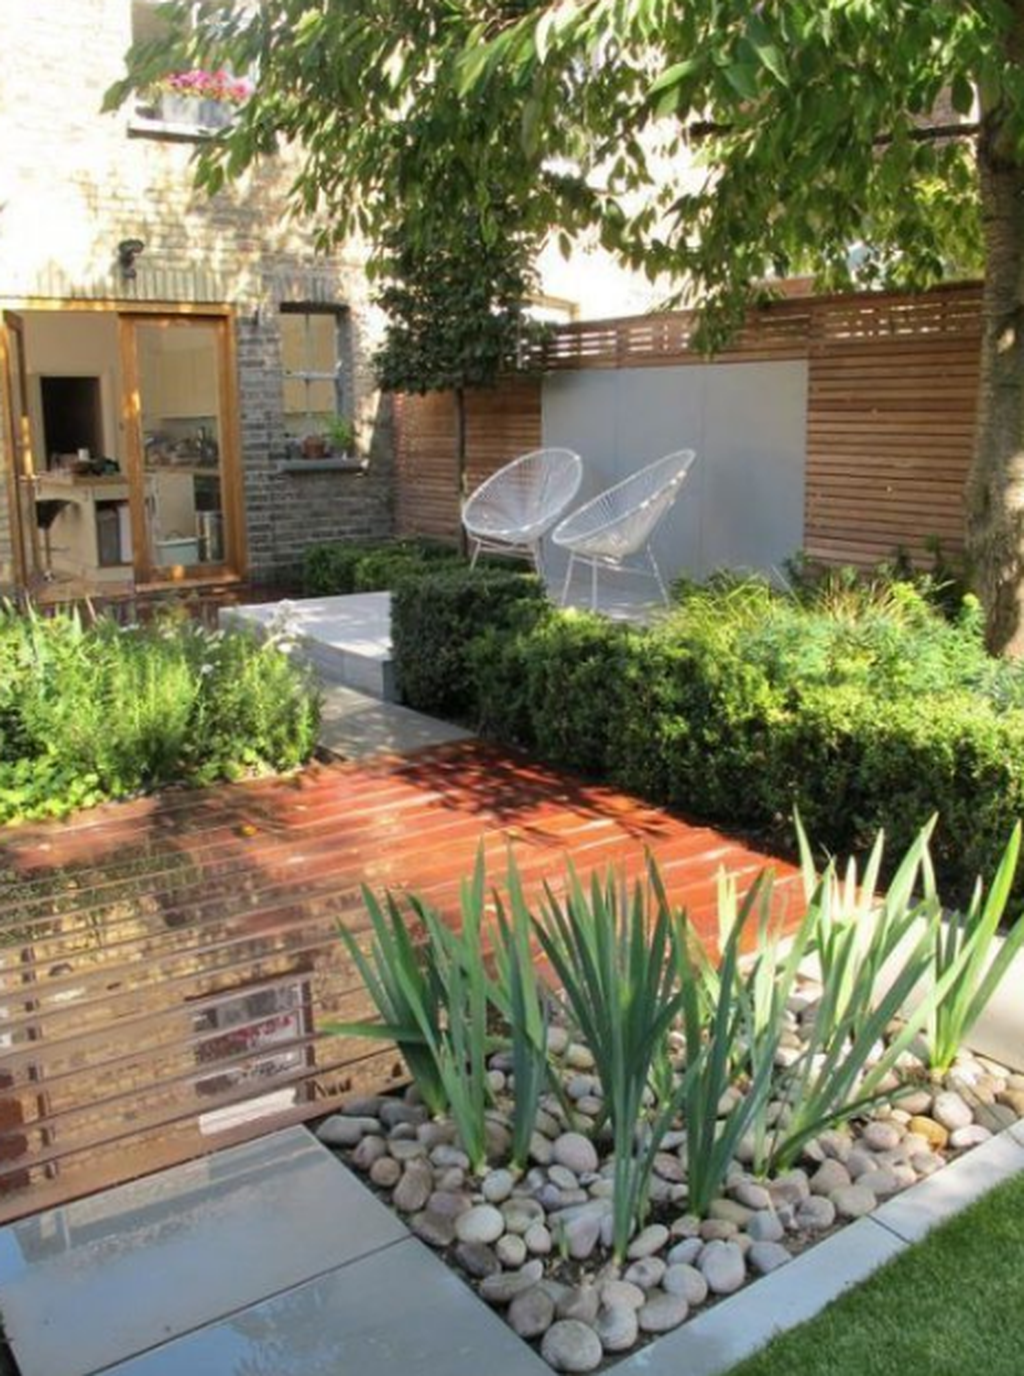 The Best Minimalist Garden Design Ideas You Have To Try 02